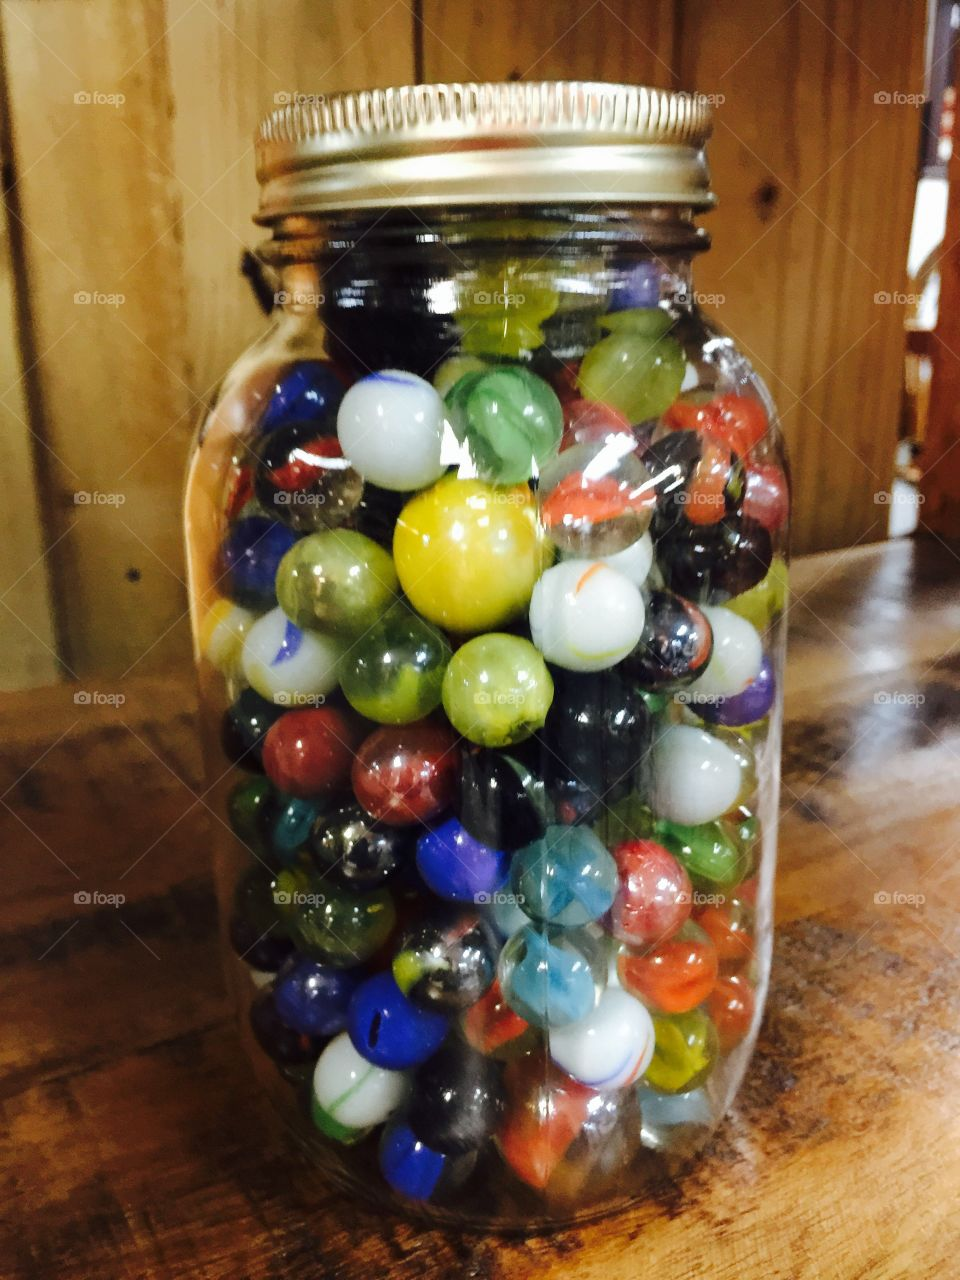 Colorful Marbles in a glass jar